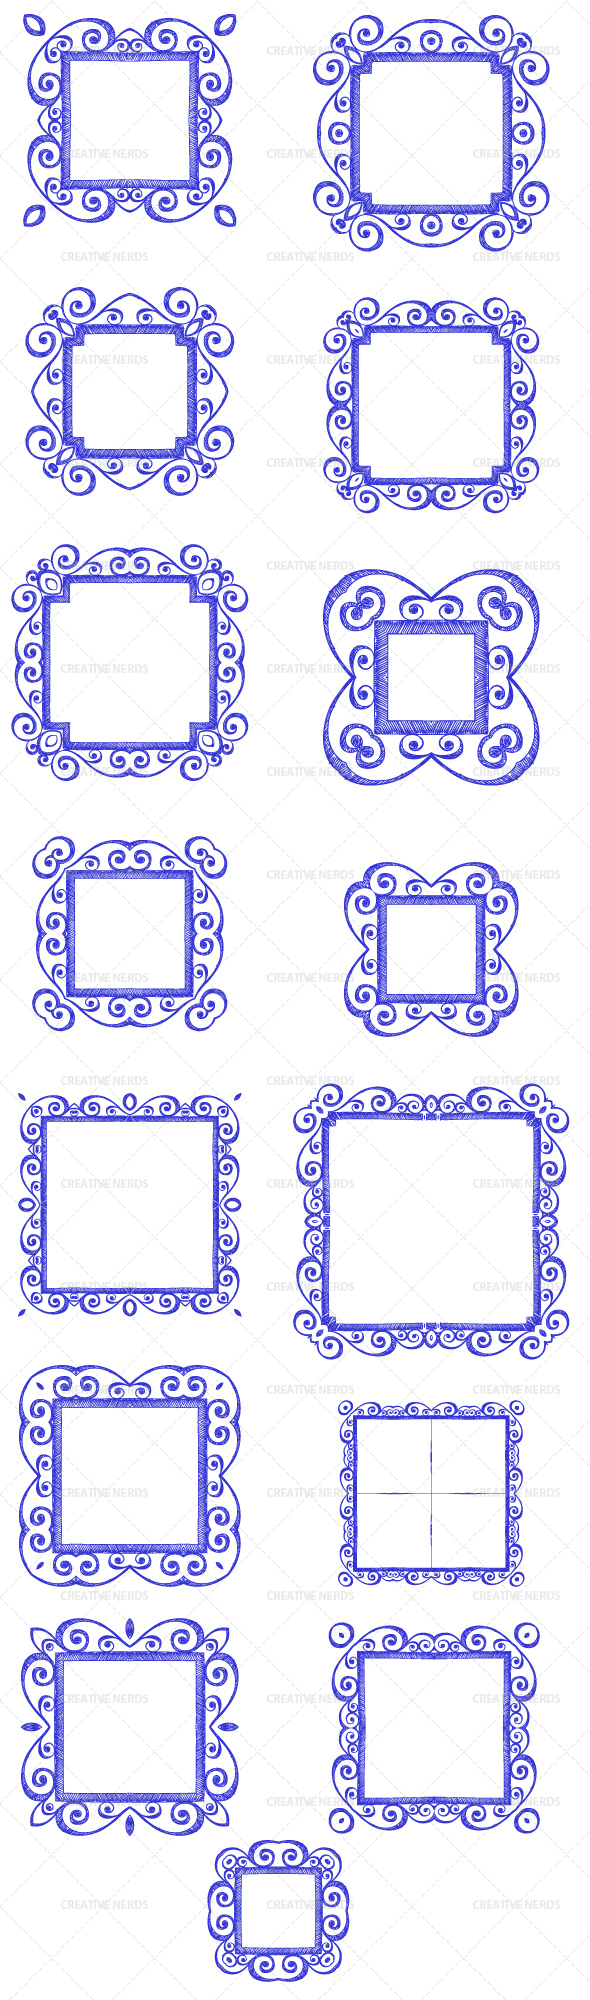 watermarked swirly frames Swirly hand sketched border frames